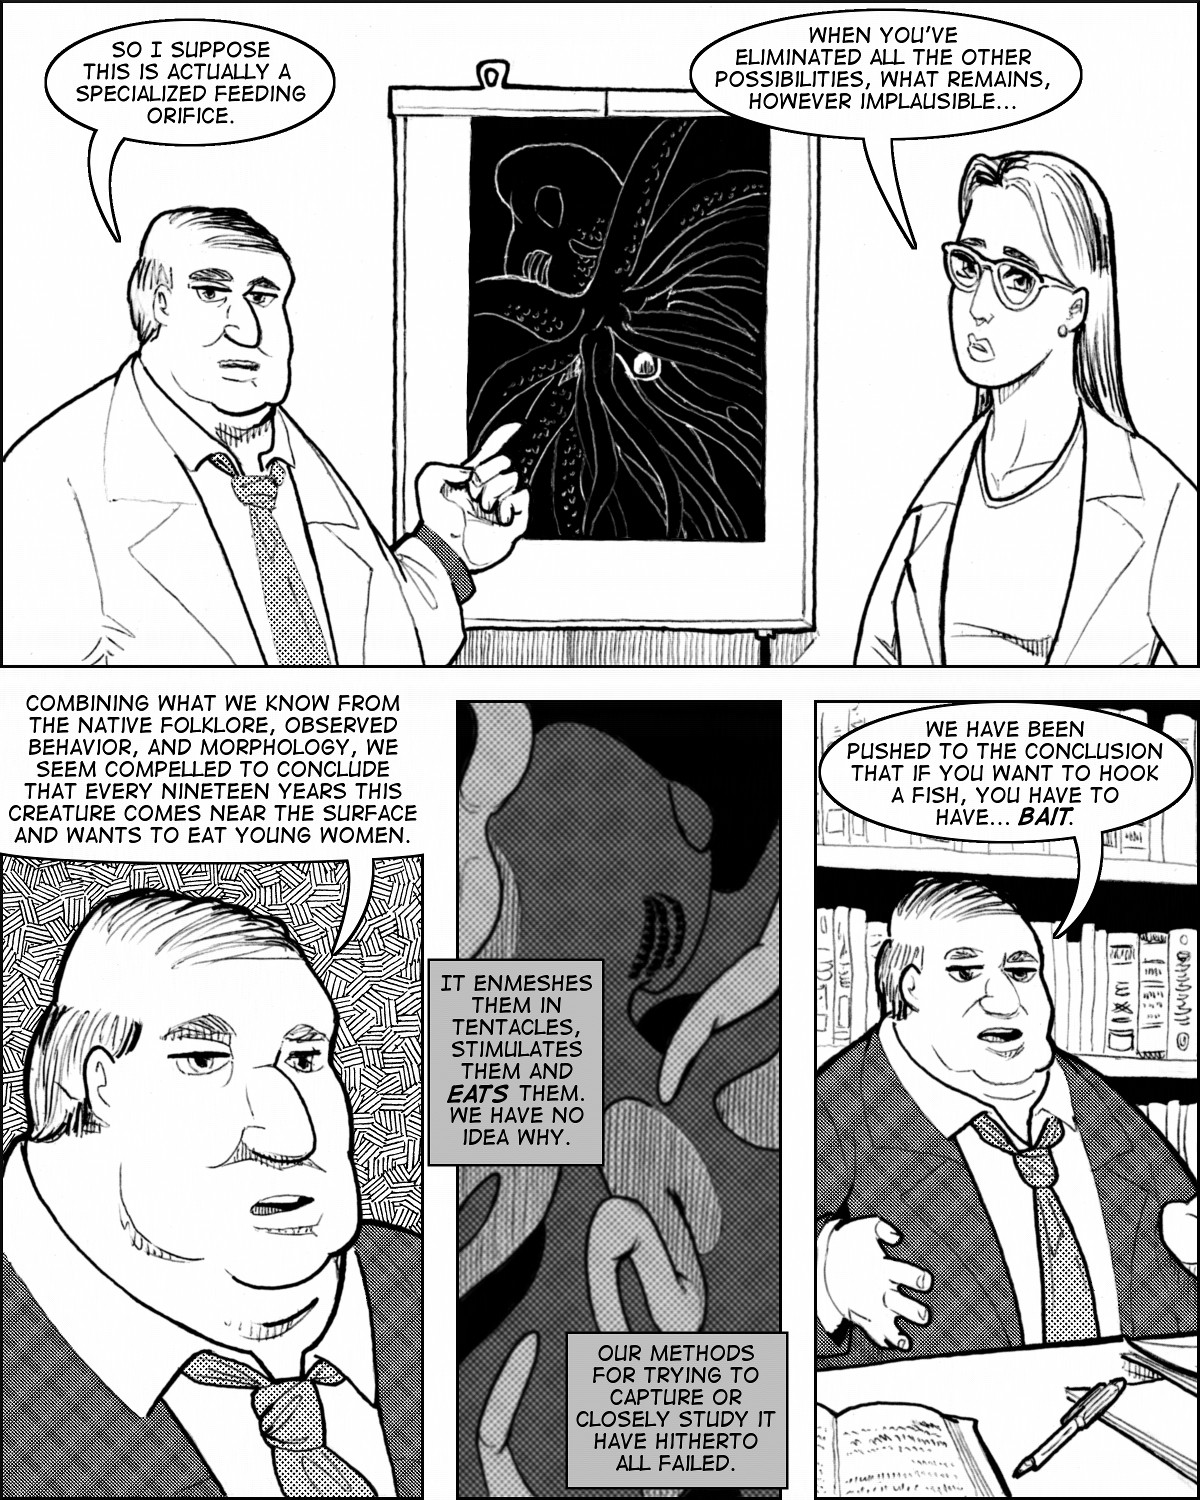 Professor Turpentine explains the point of the plot.